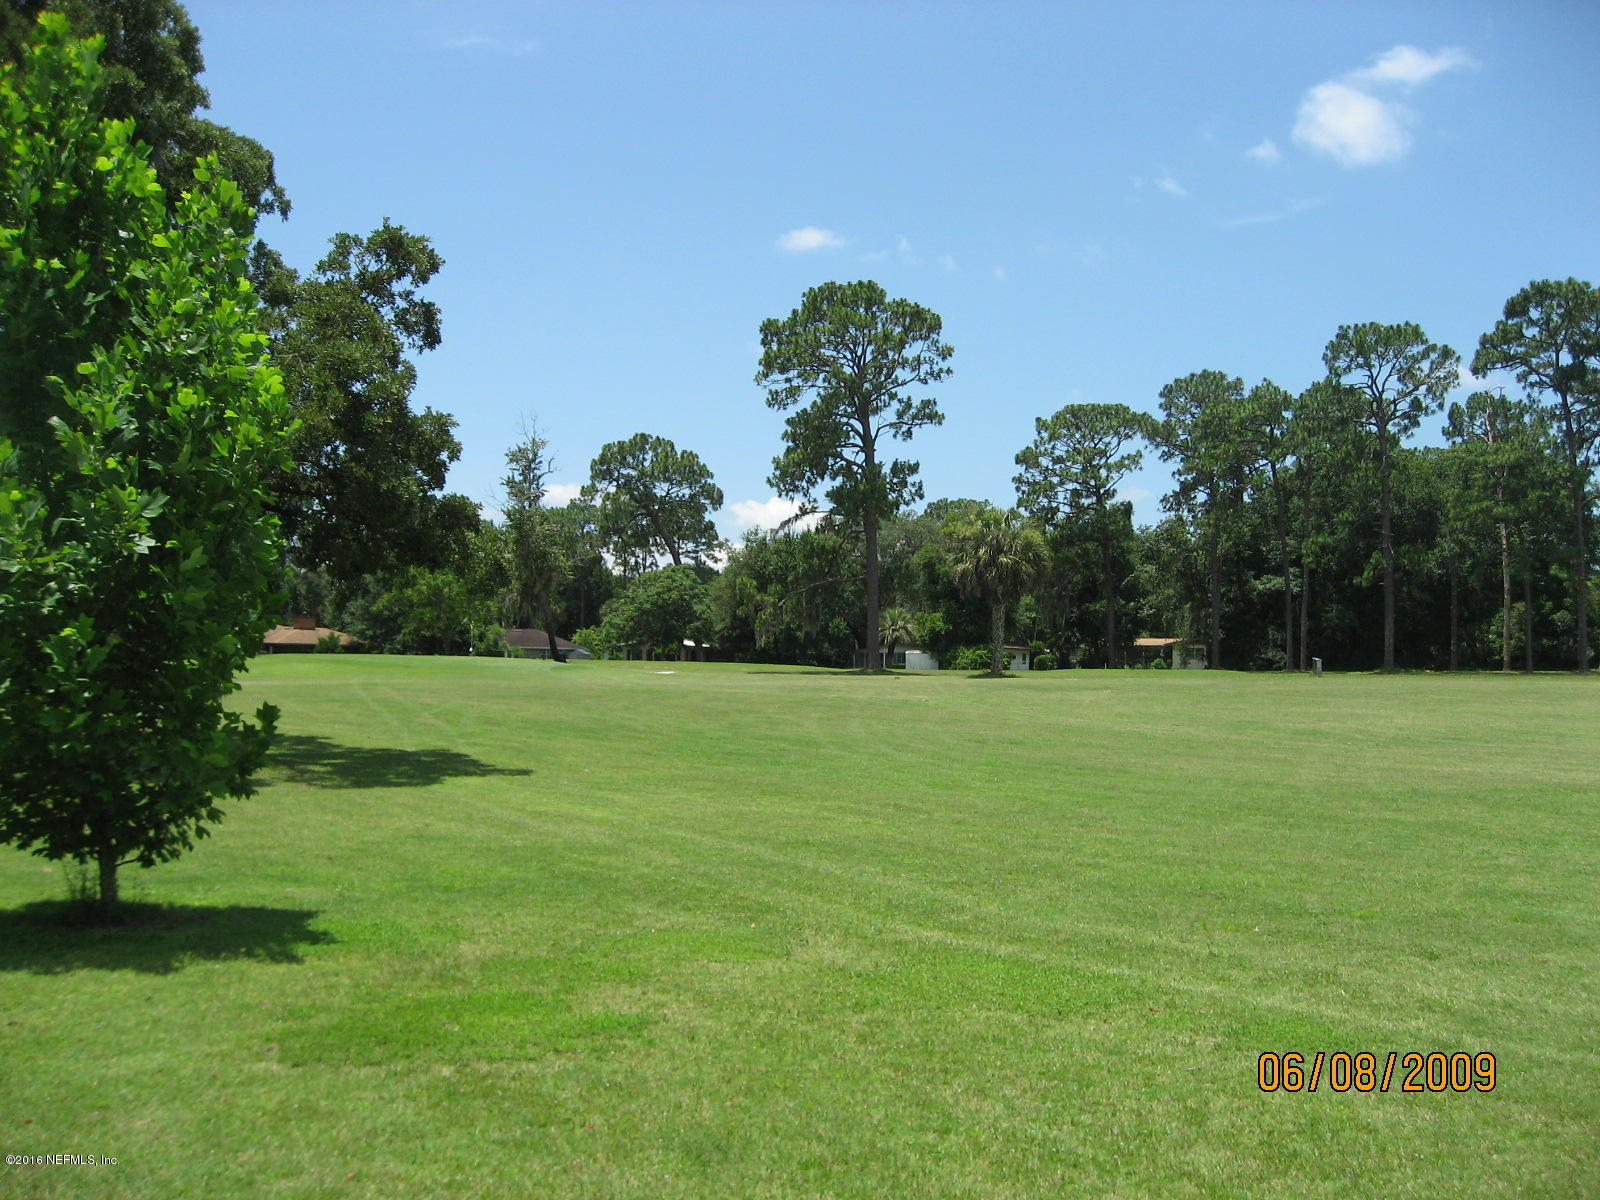 000 1ST, KEYSTONE HEIGHTS, FLORIDA 32656, ,Vacant land,For sale,1ST,645137